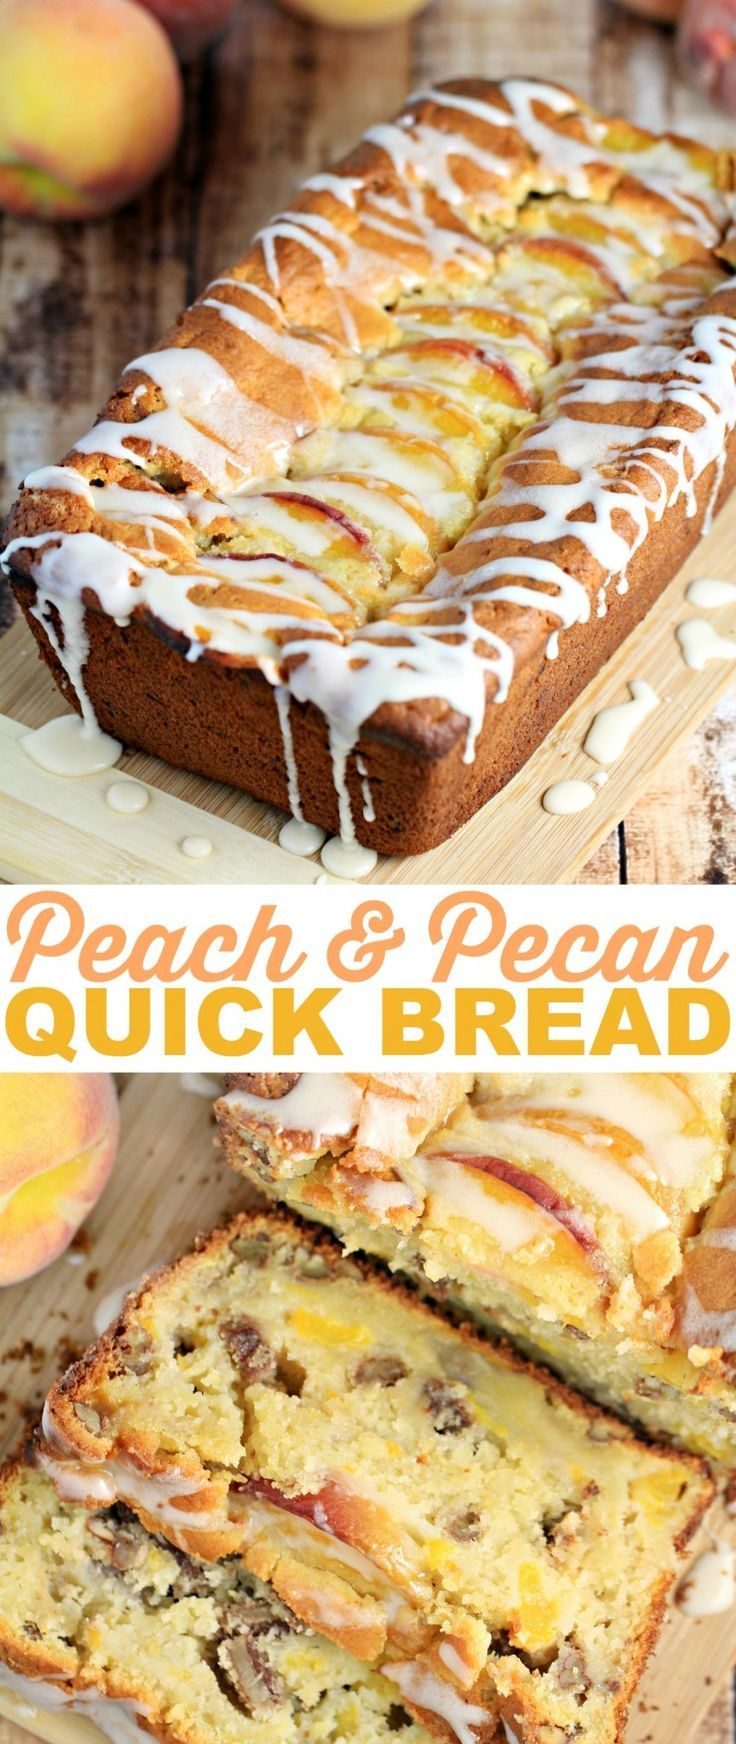 This Pecan & Peach Quick Bread is a family favourite Recipe. This Pecan & Peach loaf is wonderful after dinner with some coffee but equally… (Baking Sale Bread)